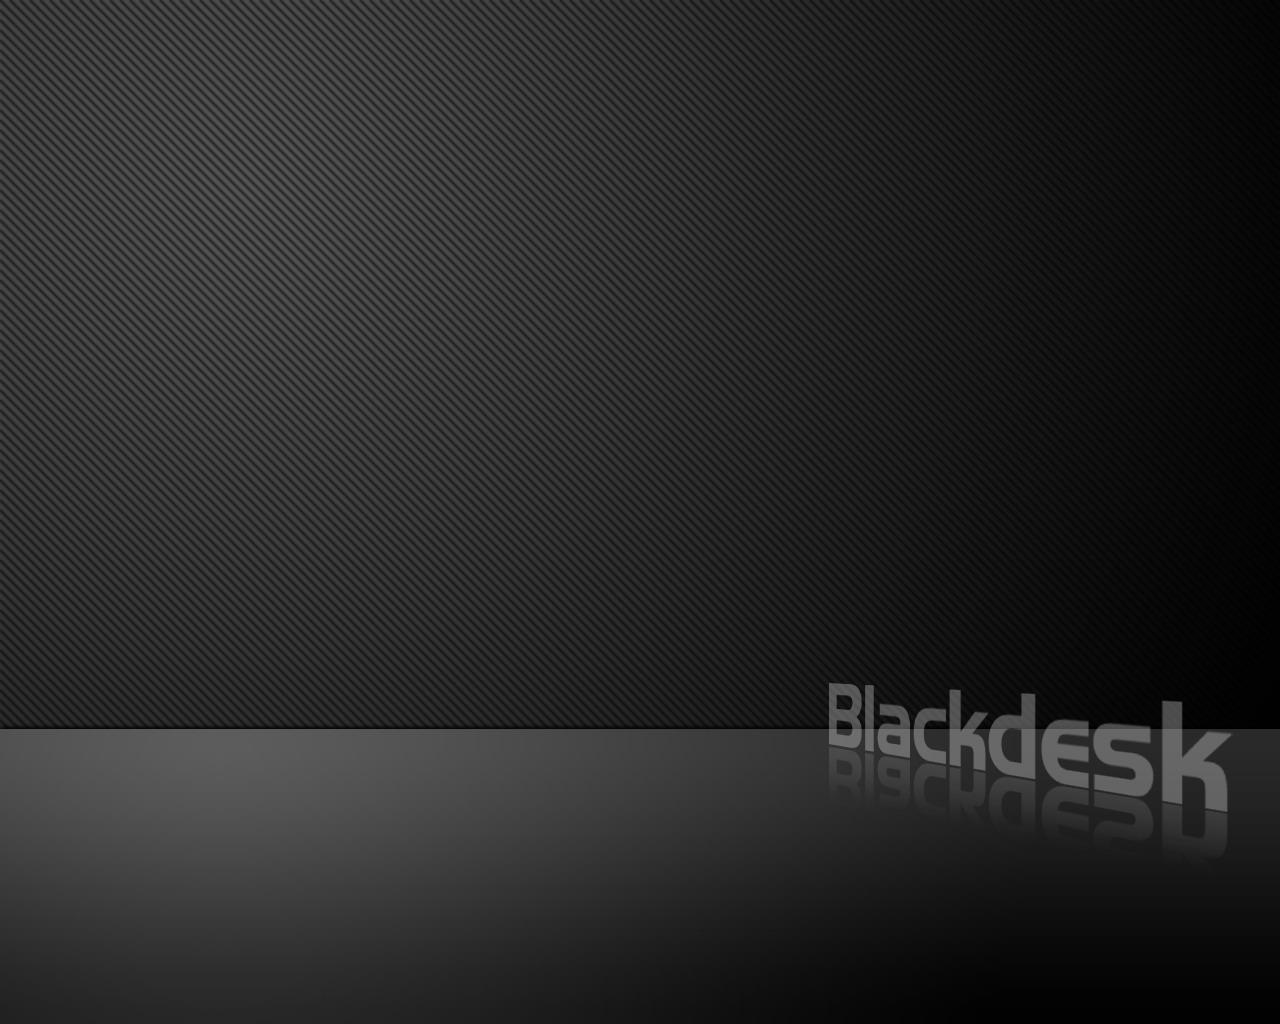 Wallpapers - Black Sunday - 01